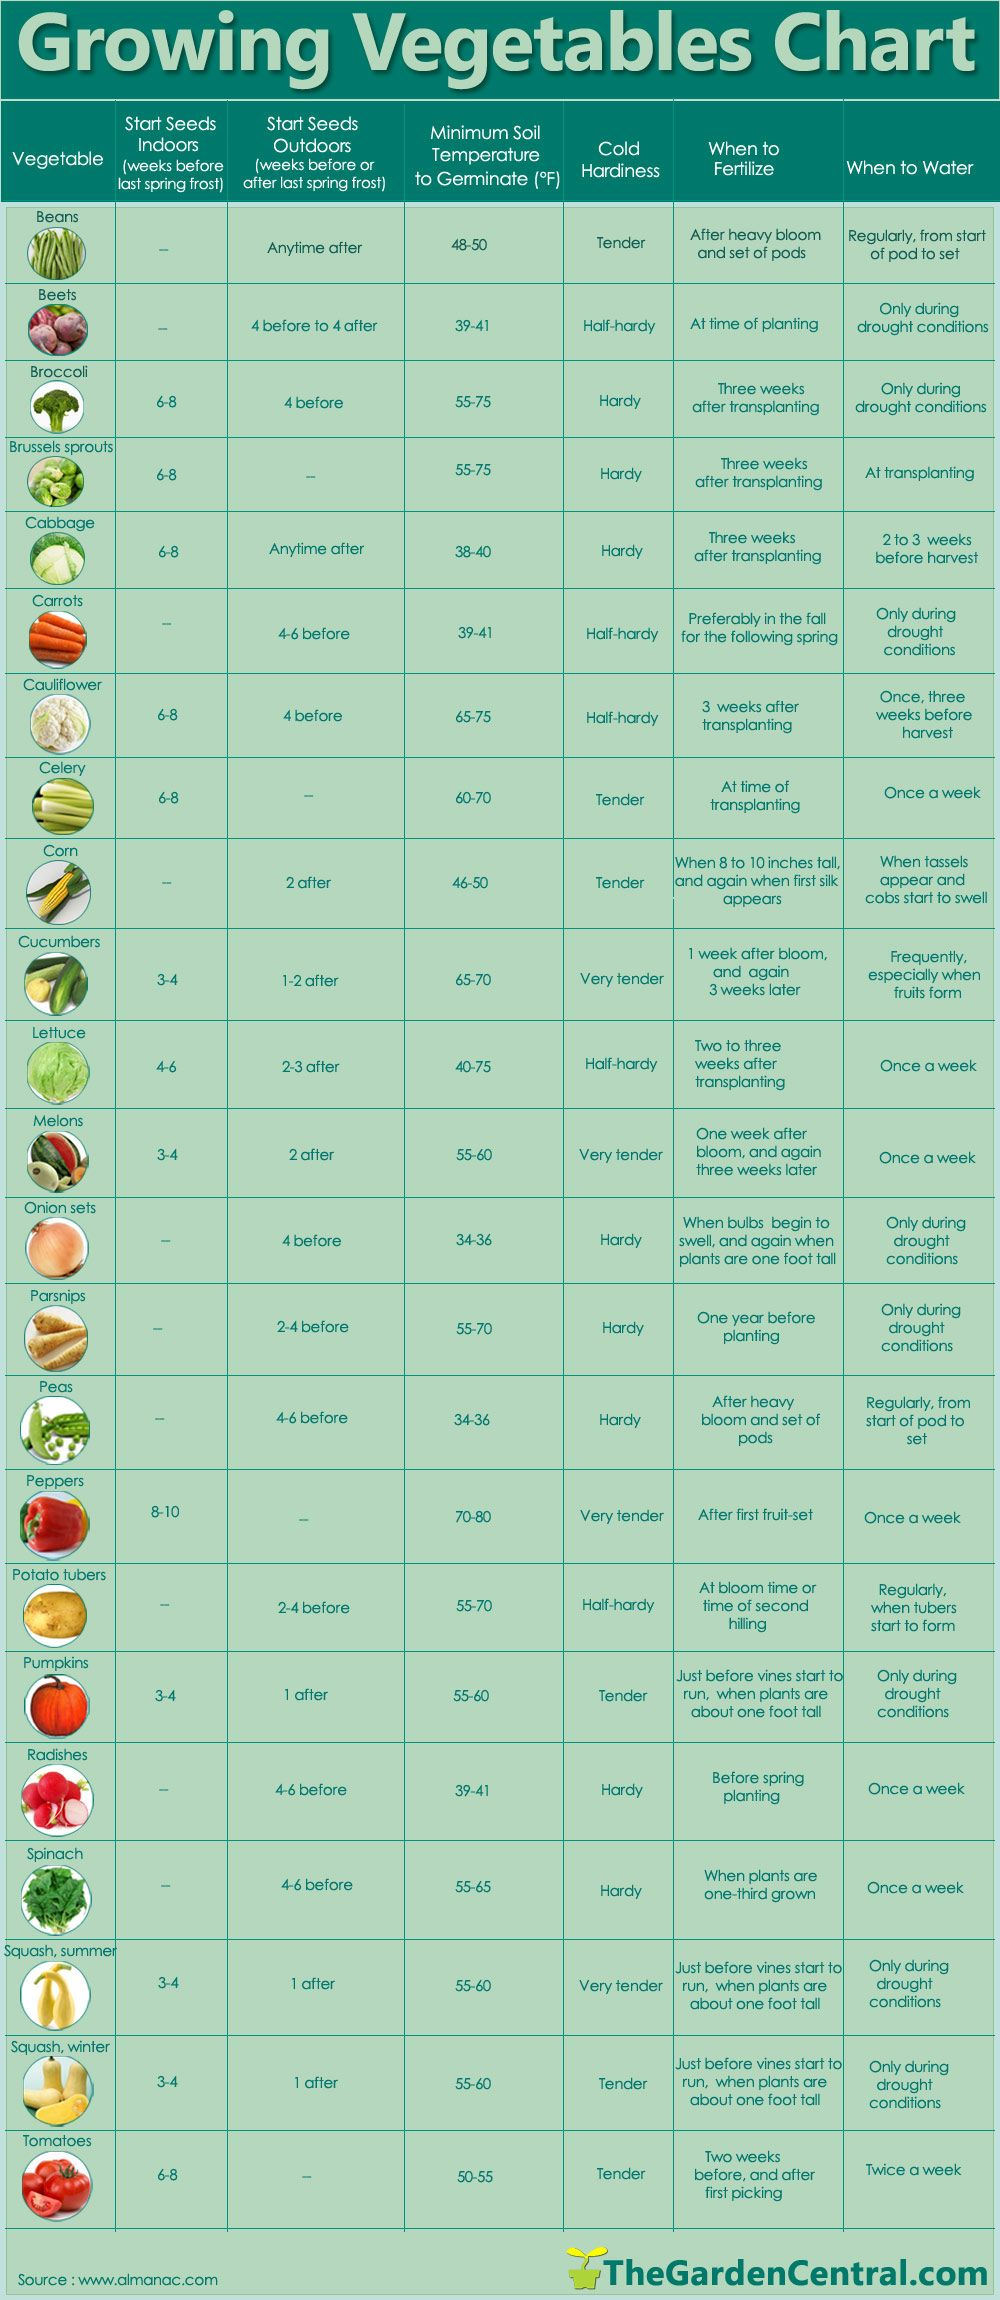 Growing Veggies Chart Guess I Should Have This As Now Am The Owner Of A Veggie Garden